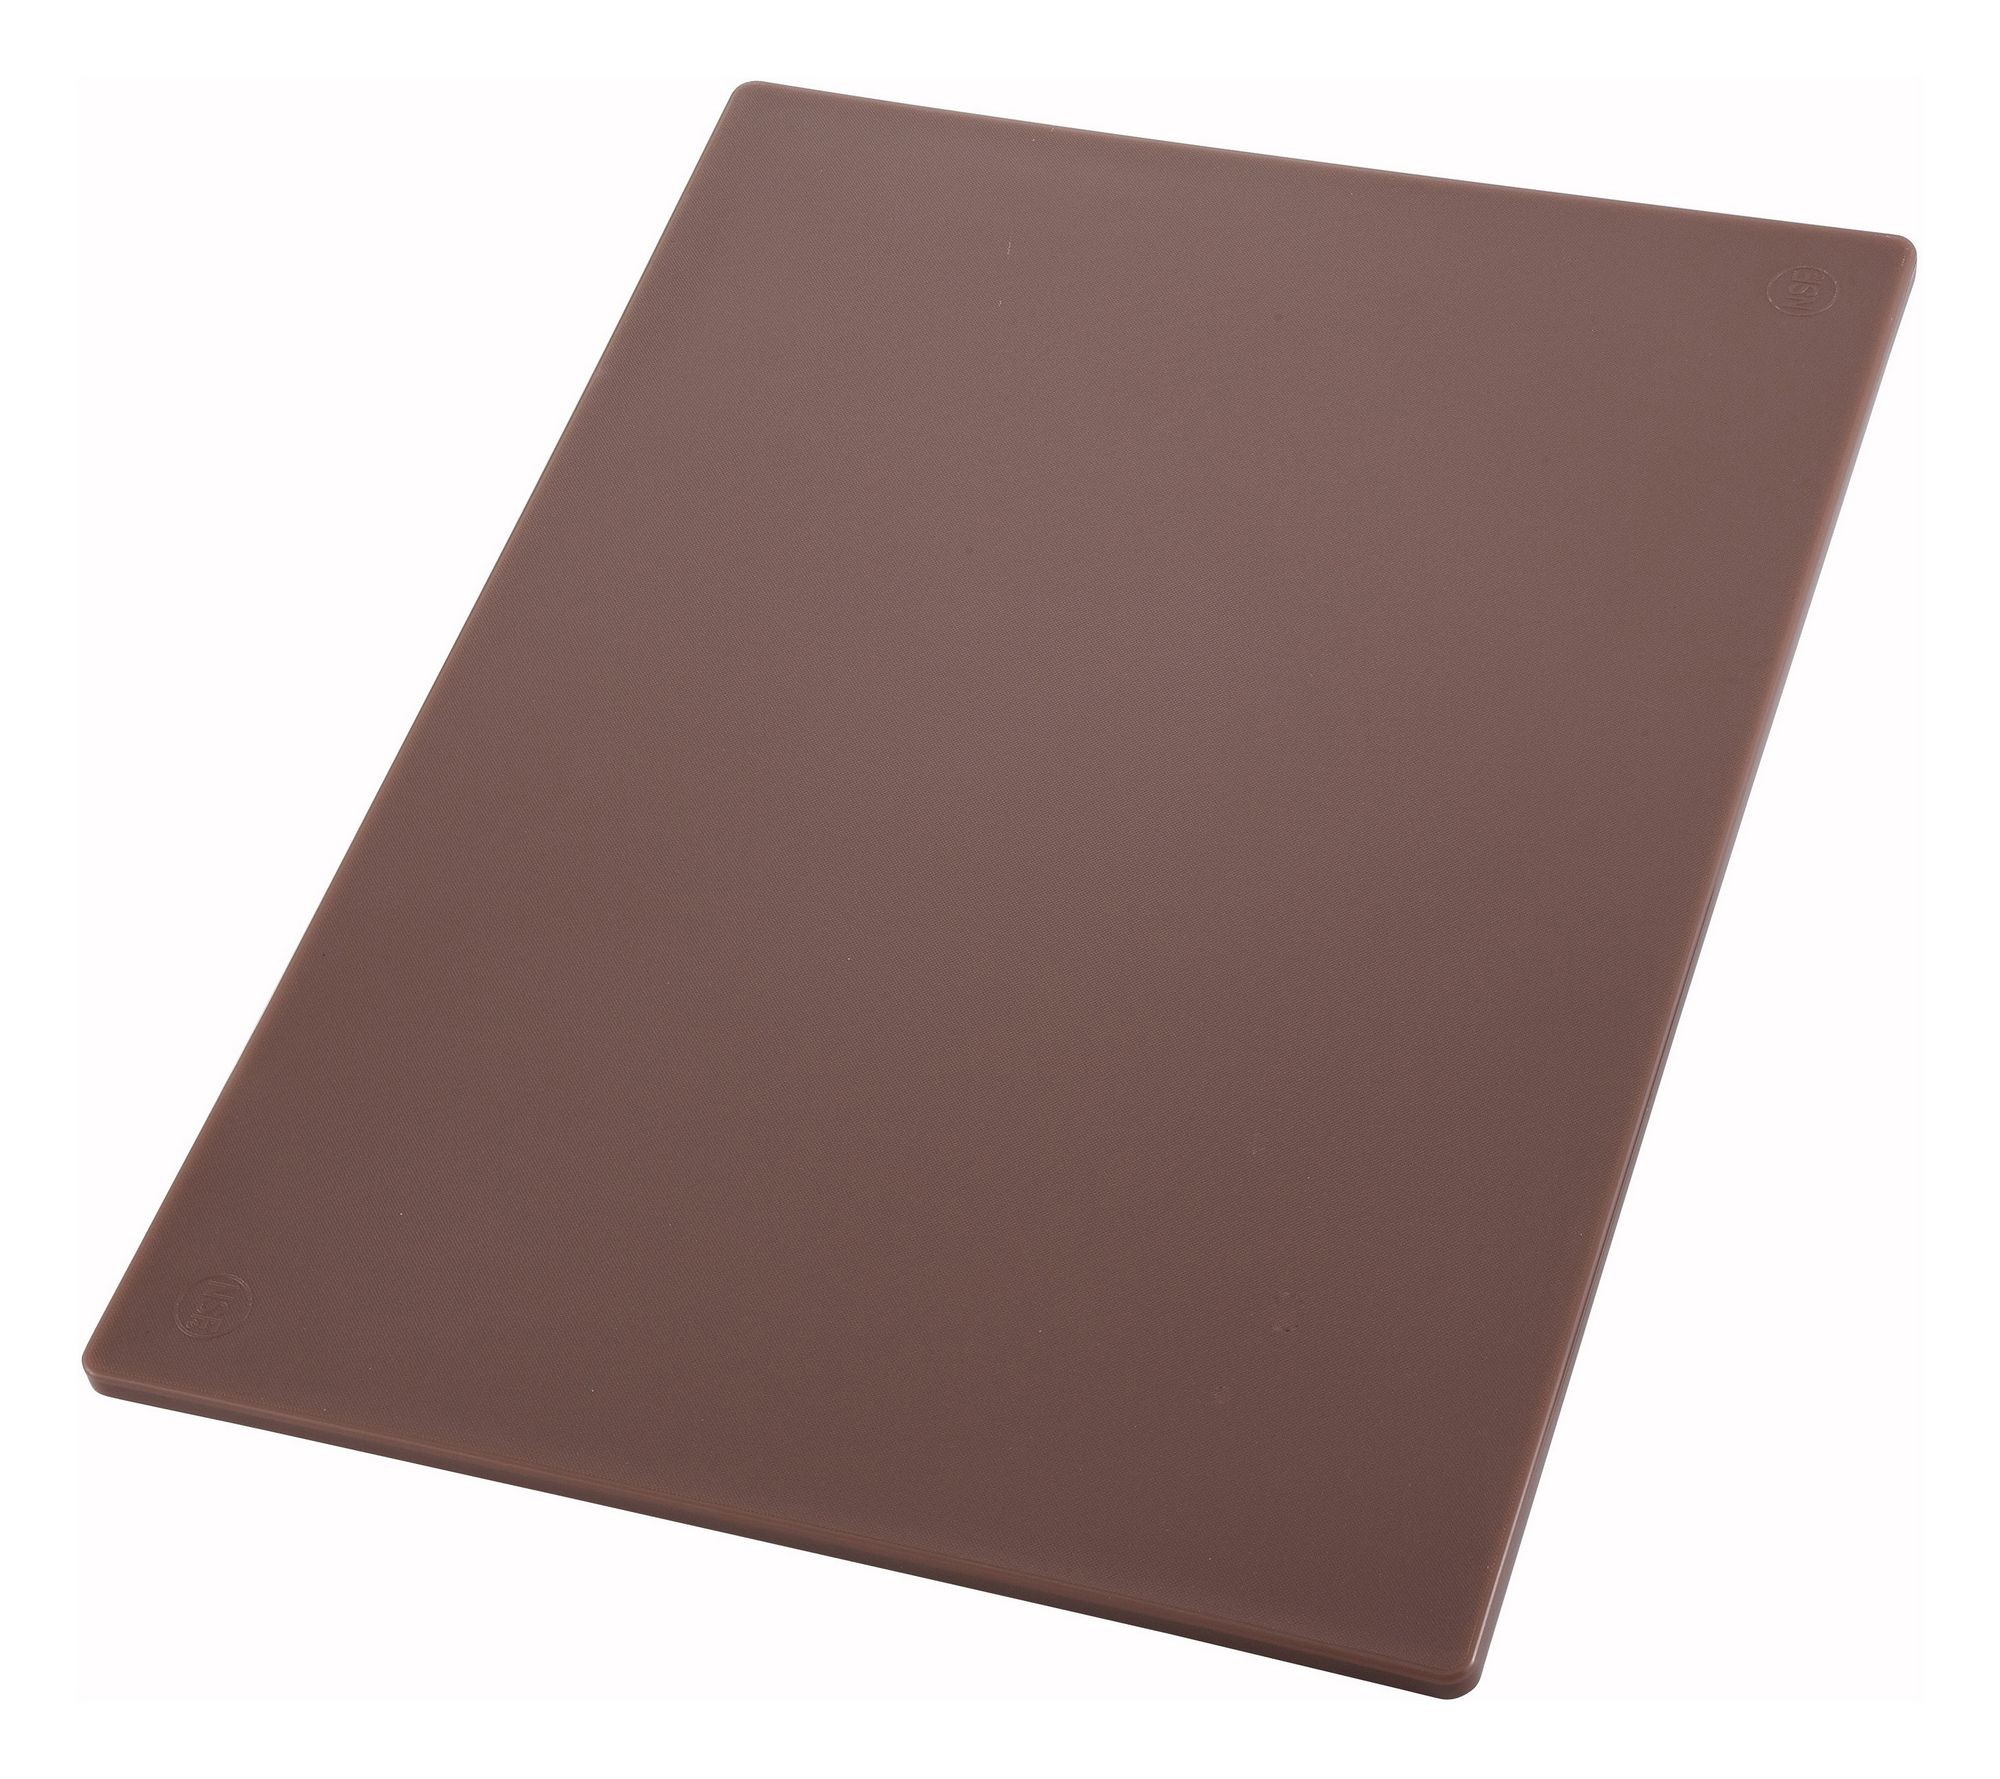 12X18X1/2 Cutting Board Brown (Cooked Meats Board)